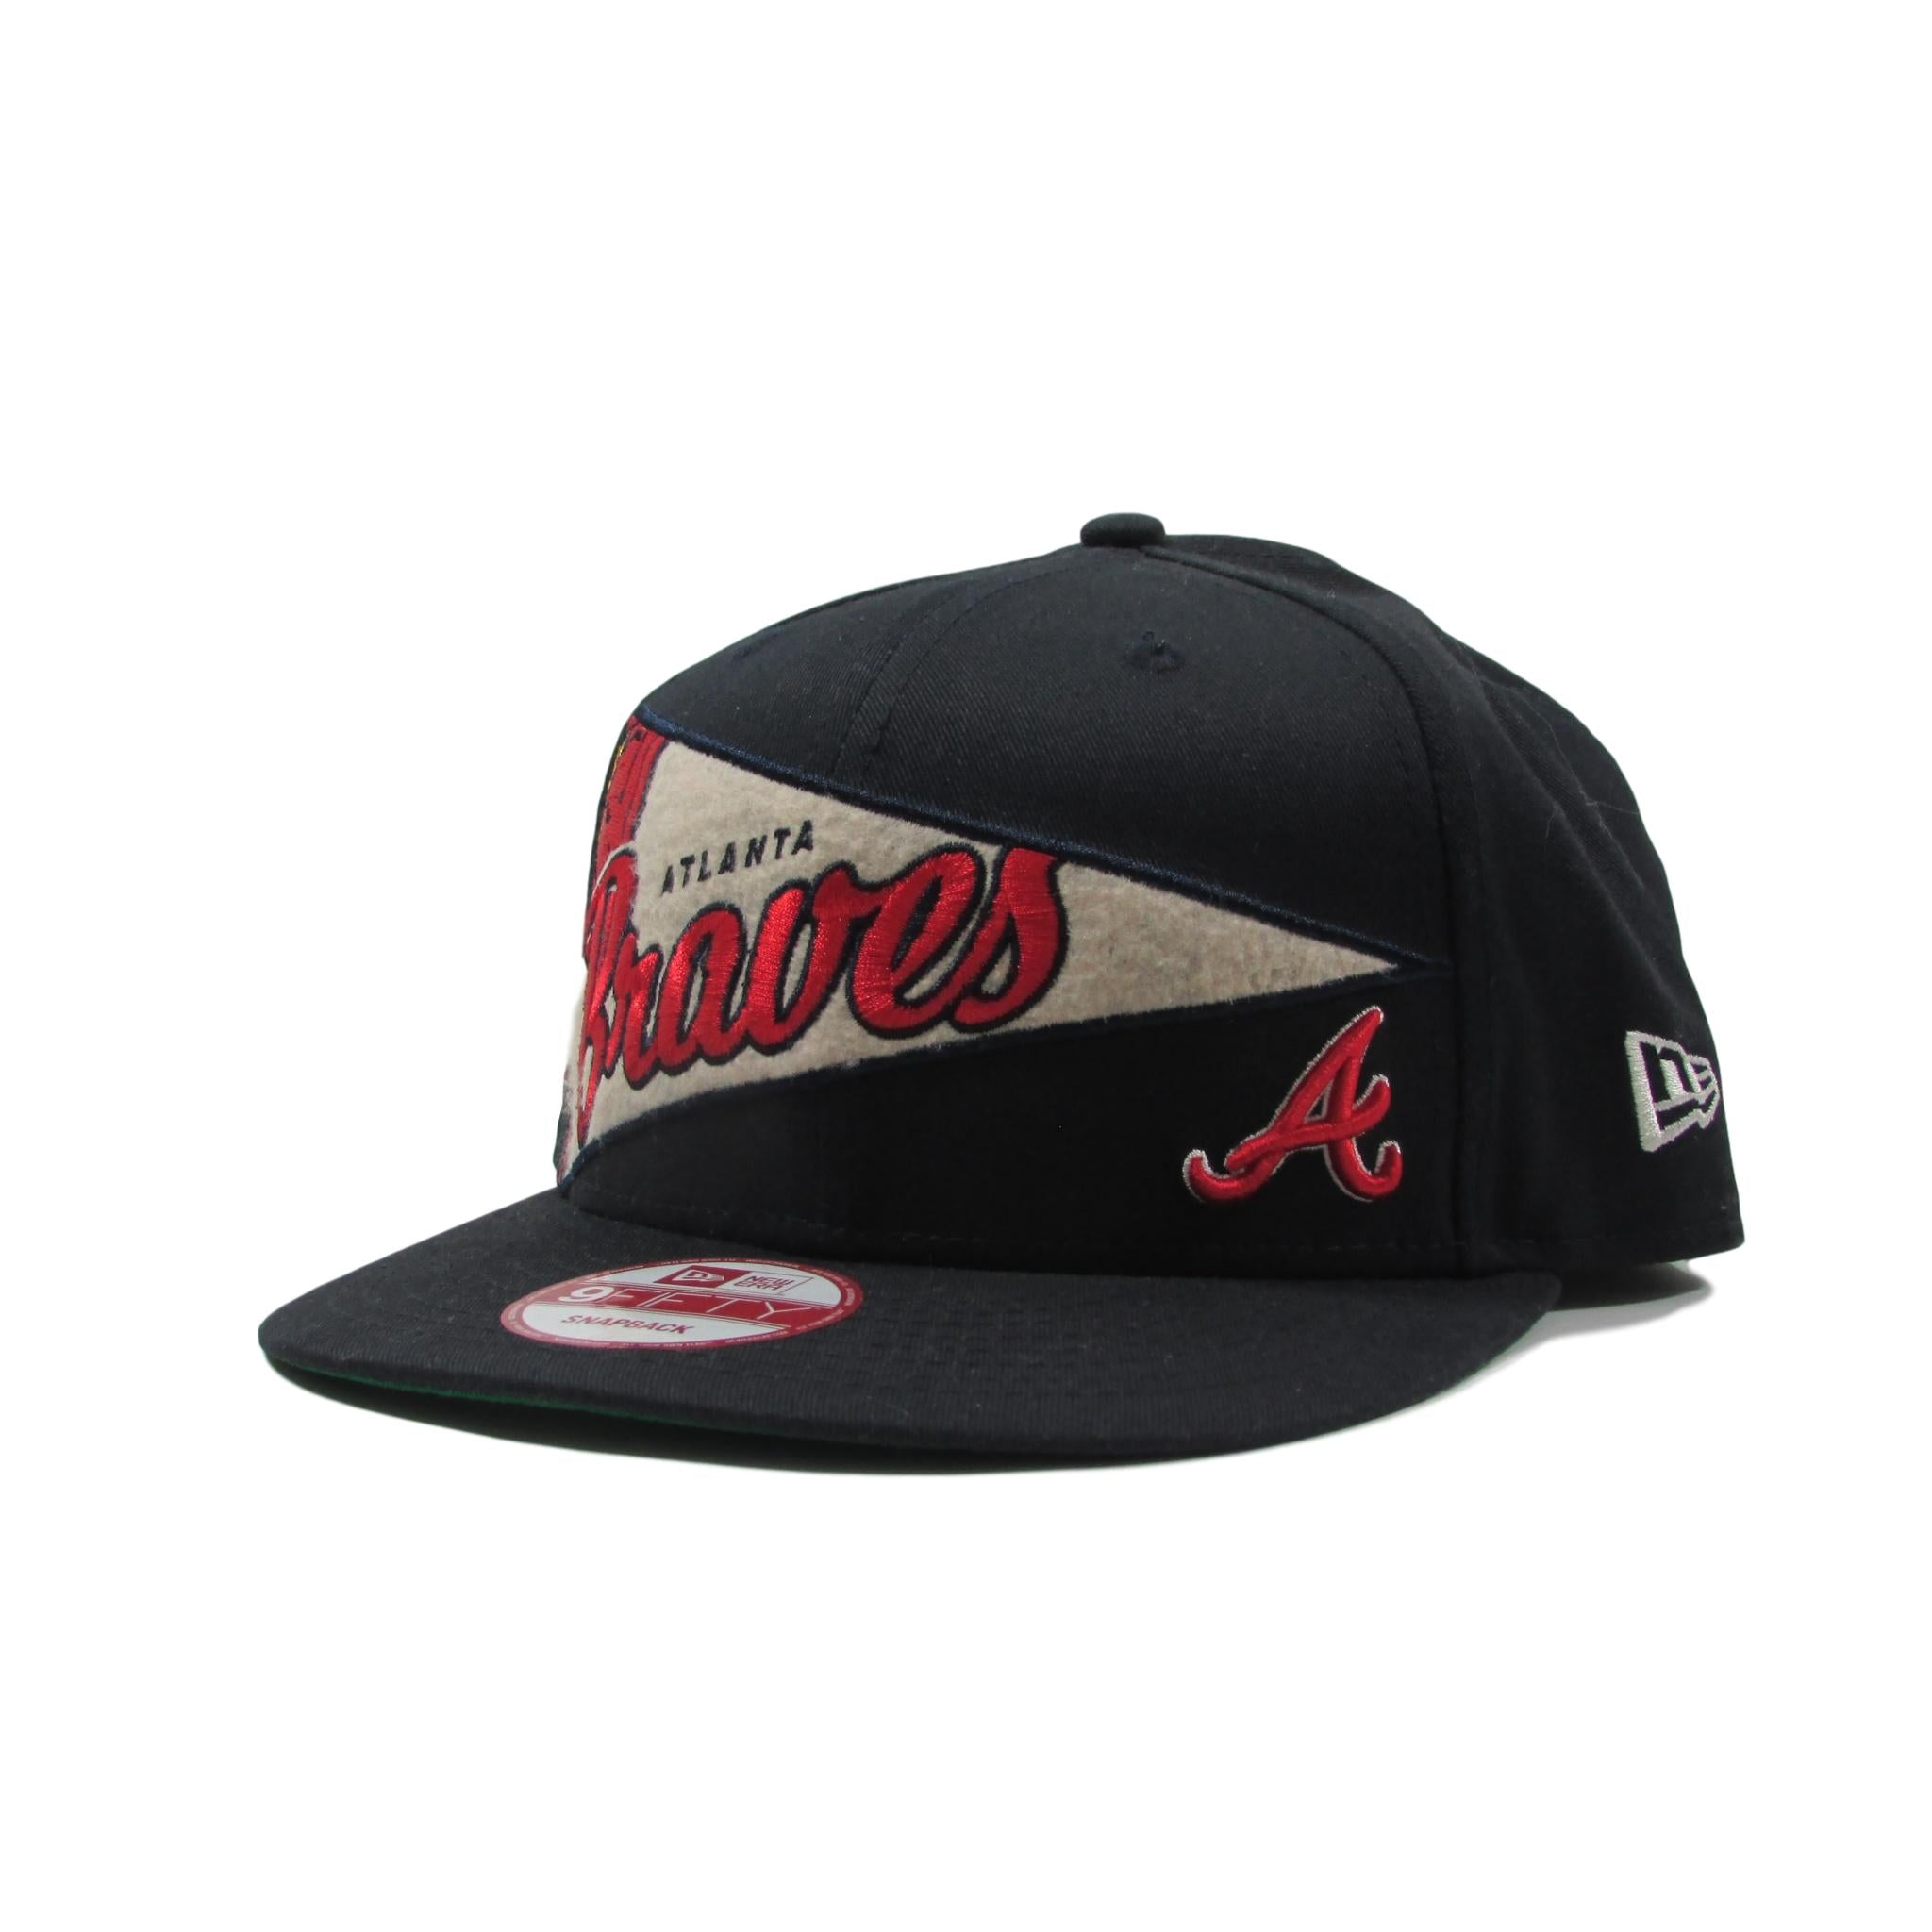 Atlanta Braves Baseball Snapback Hat Pennant Banner Style New Era